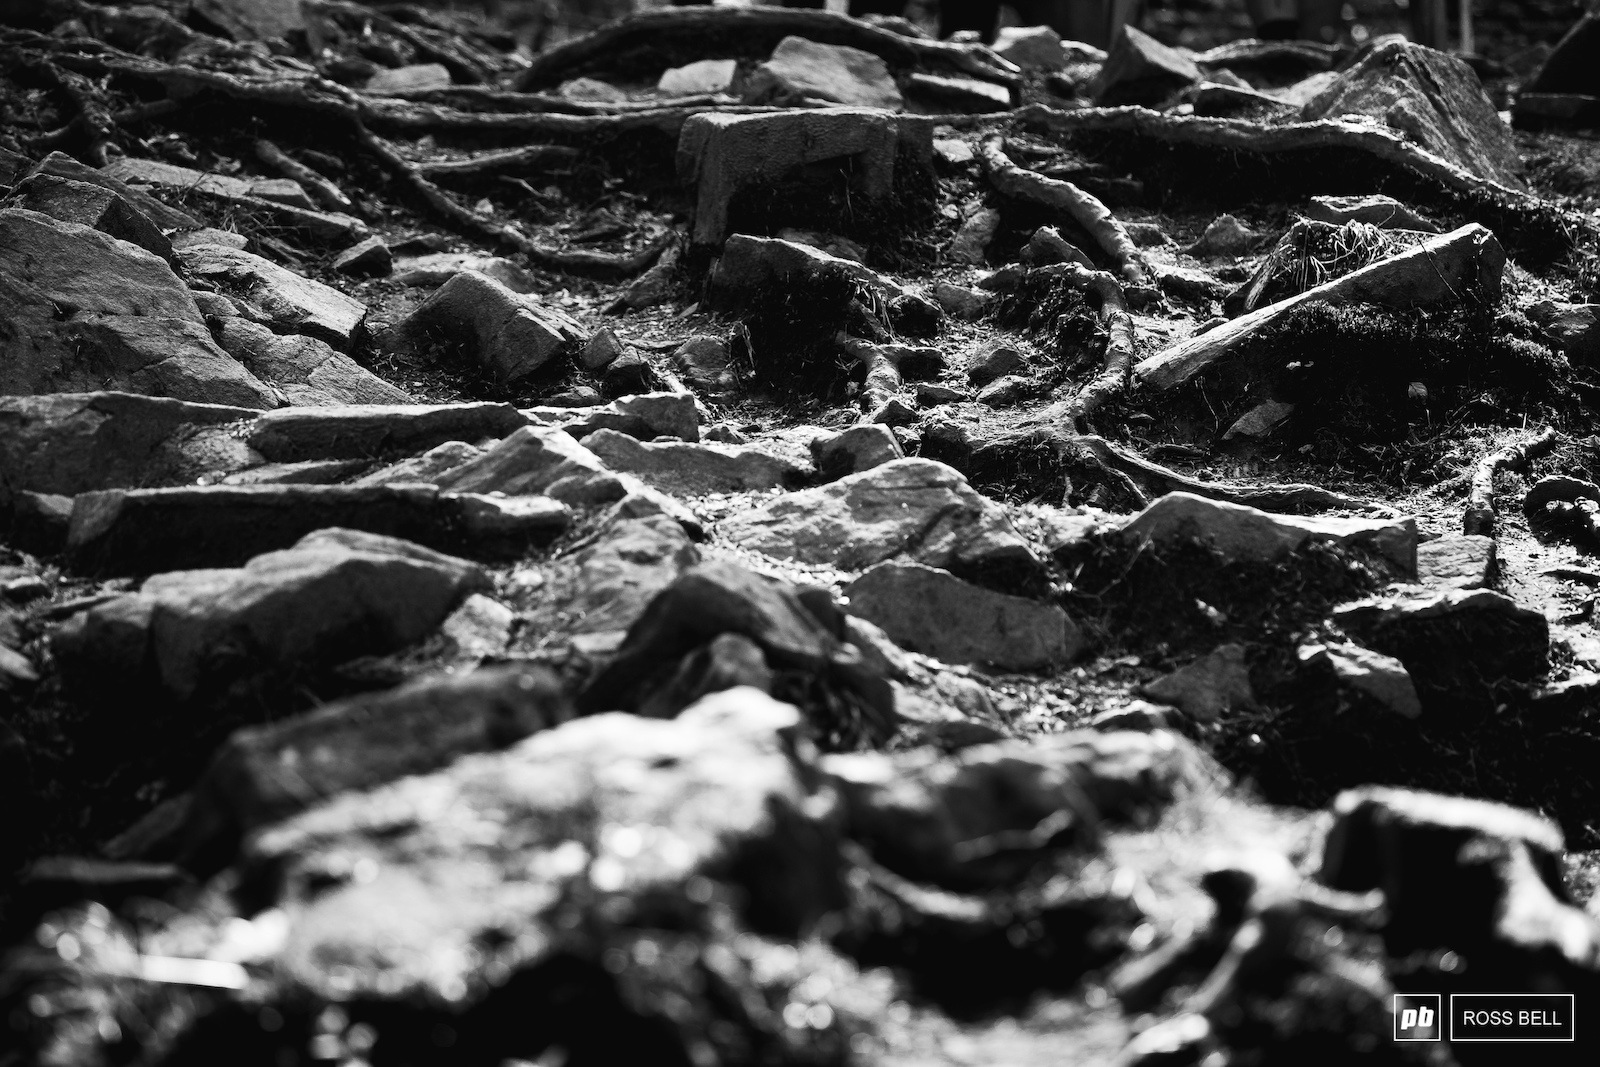 A minefield of roots and rocks ready to wreck rims and tires.